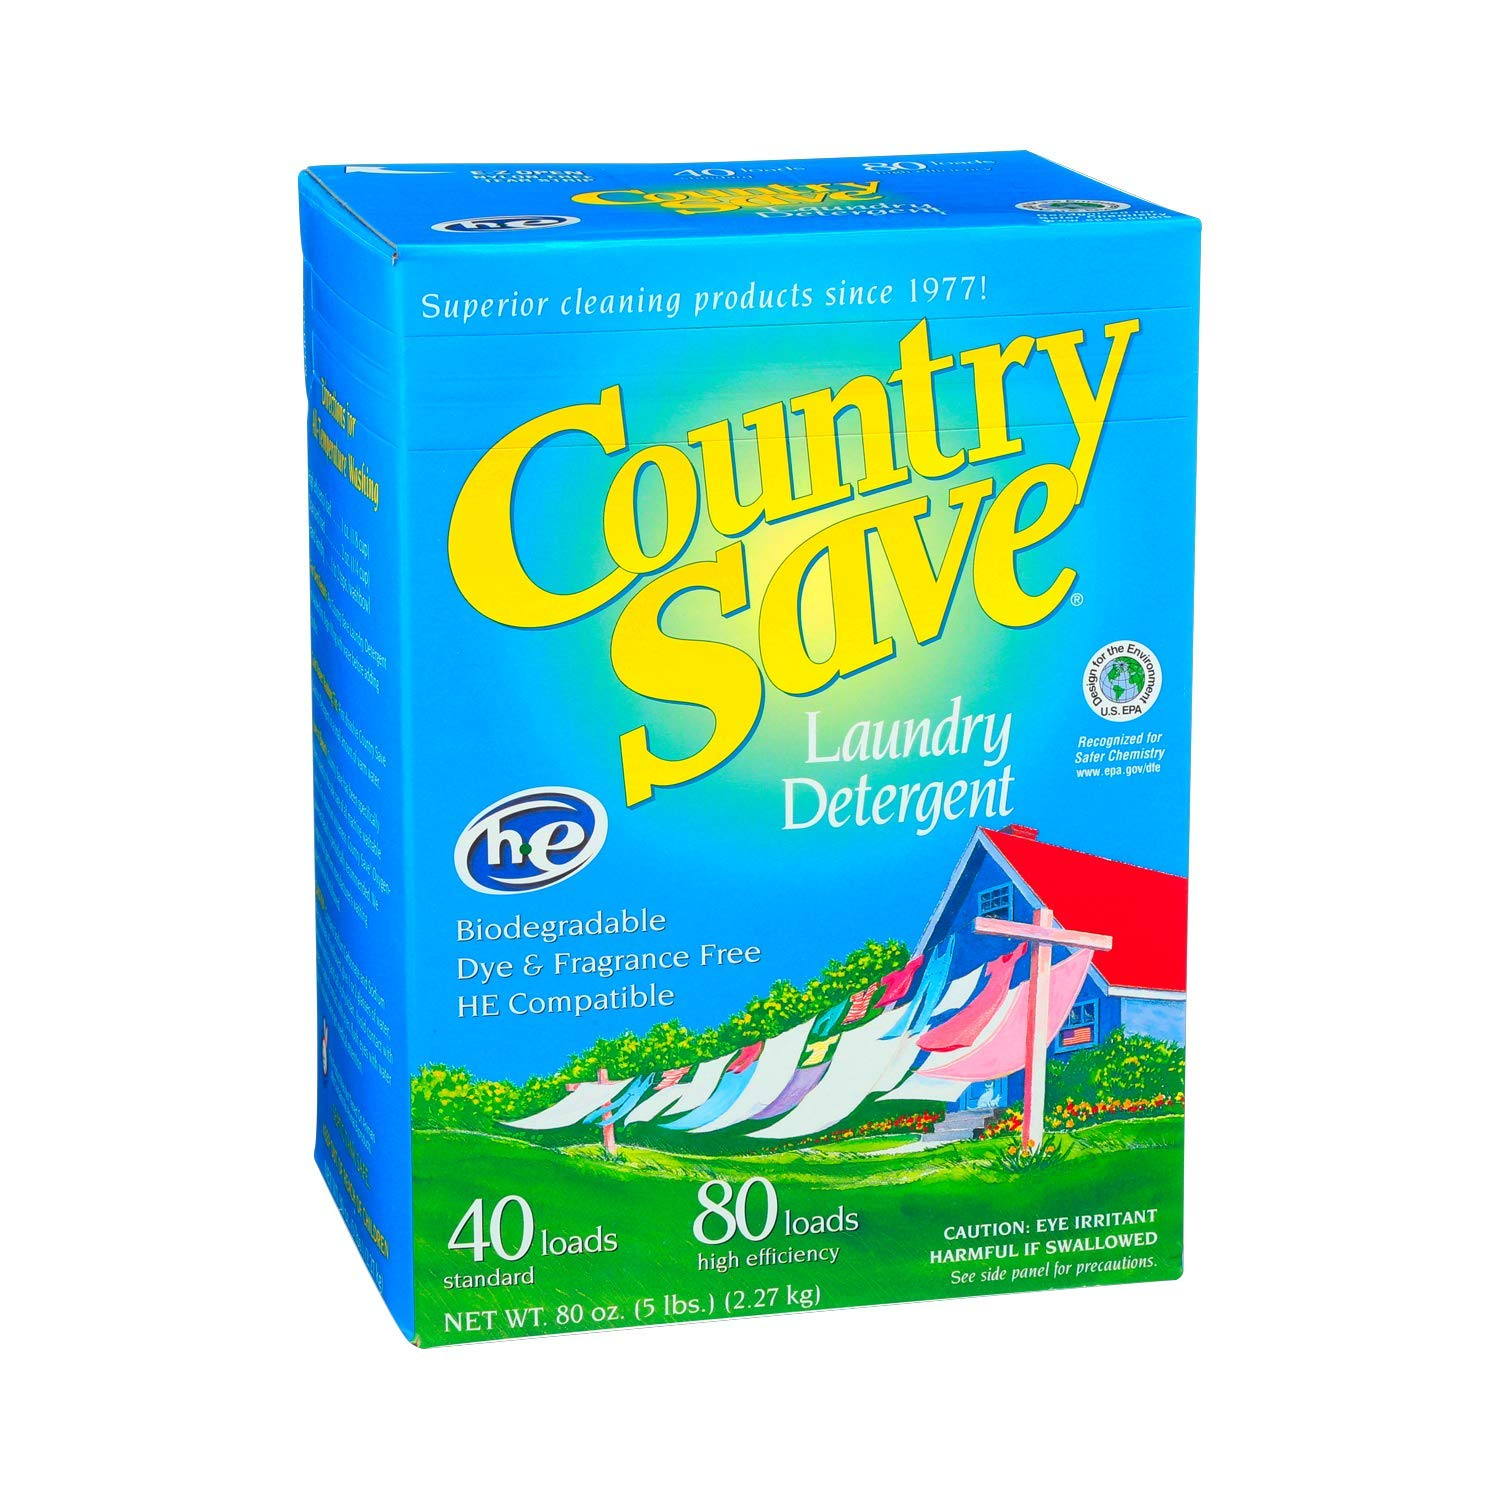 Country Save Biodegradable Non Toxic Fragrance Free Laundry Detergent Powder for Cold and Warm Washing in HE and Regular Machines - 5 lb (80 oz)